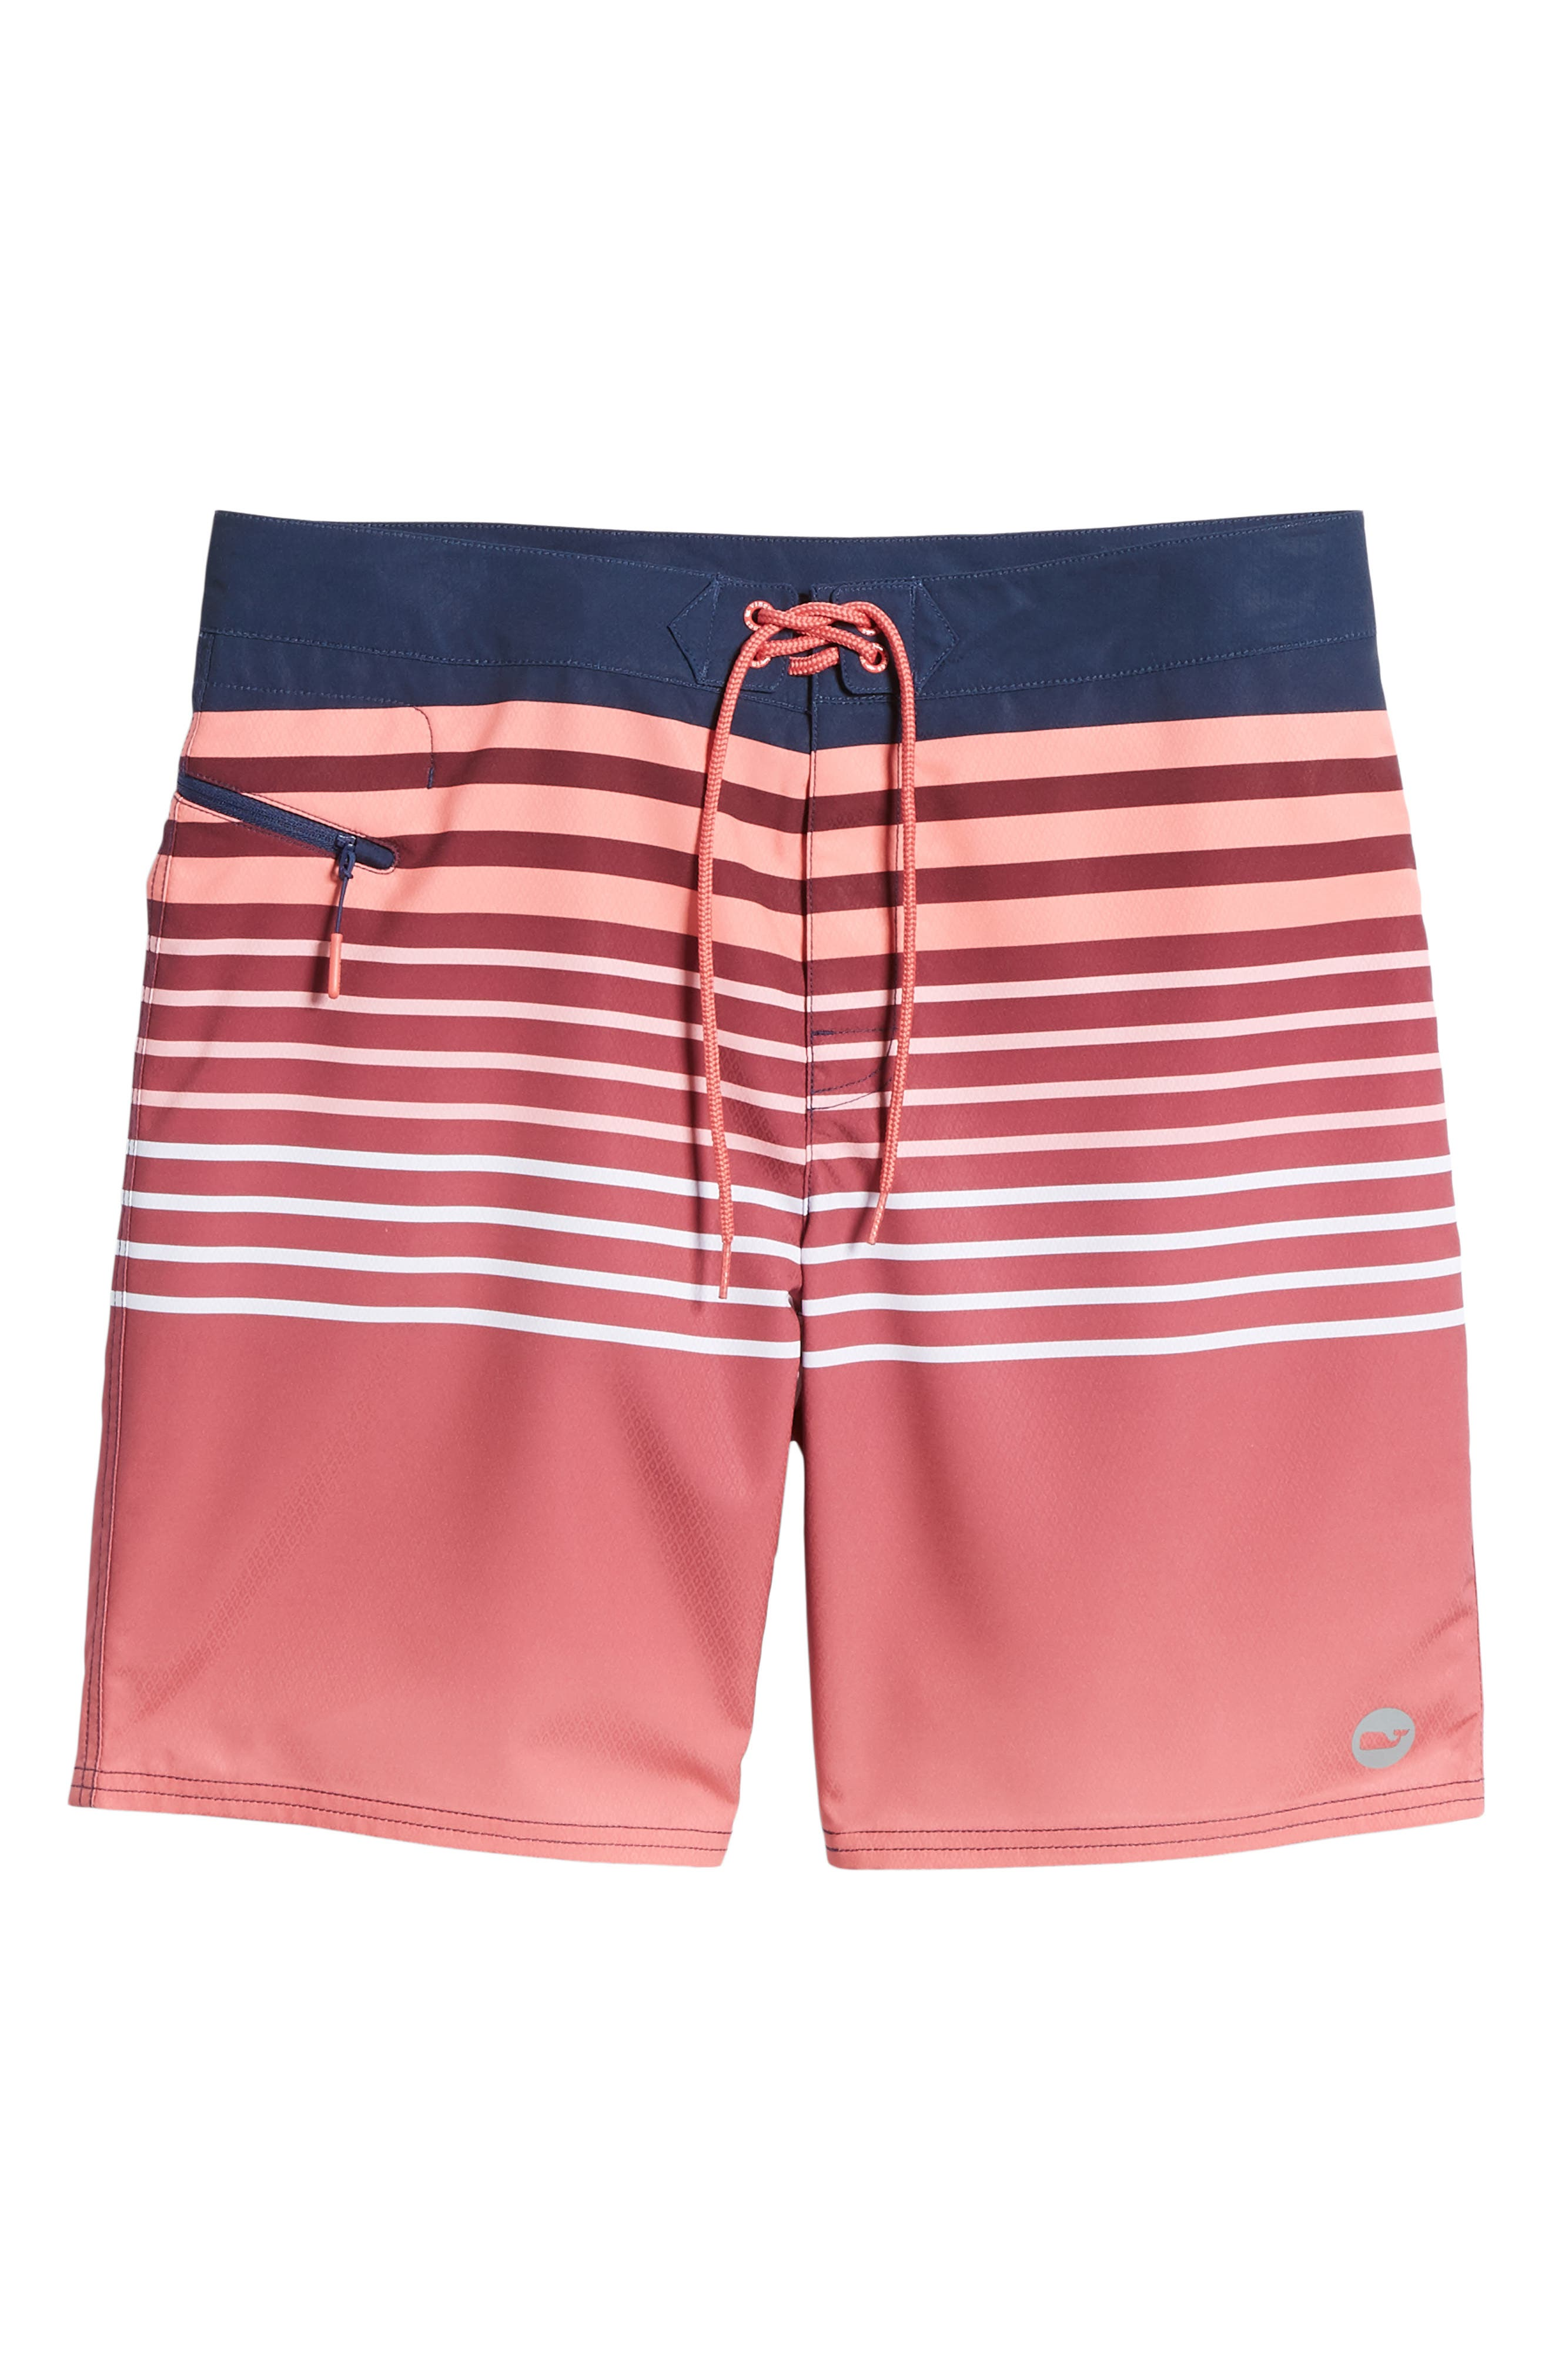 Surflodge Stripe Board Shorts,                             Main thumbnail 1, color,                             Jetty Red